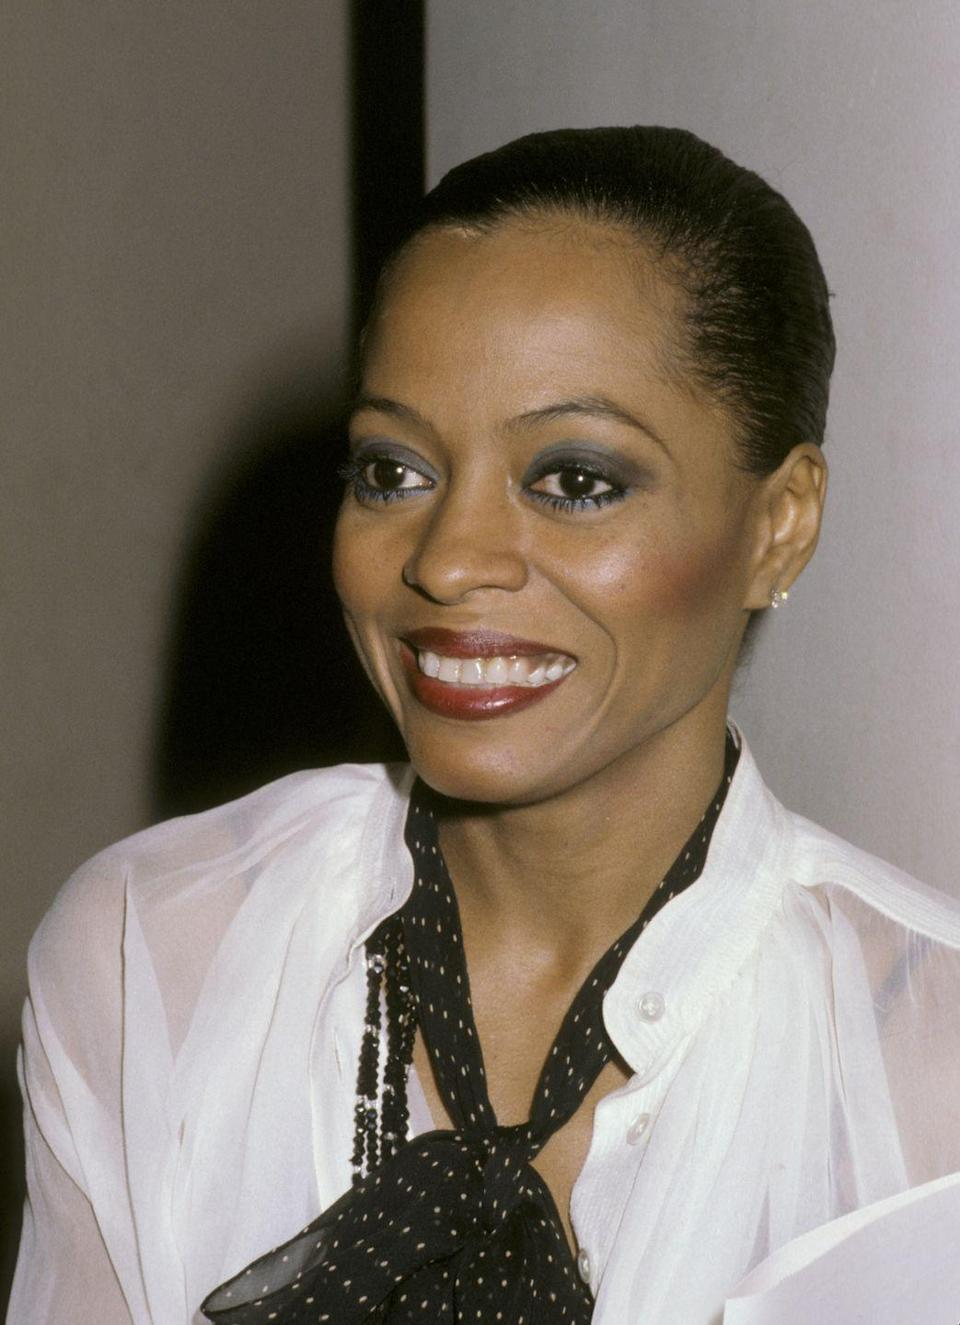 <p>Diana Ross was inducted into the Rock & Roll Hall of Fame for her work with the Supremes in 1988. She was not, however, recognized by the organization for her solo work.</p>